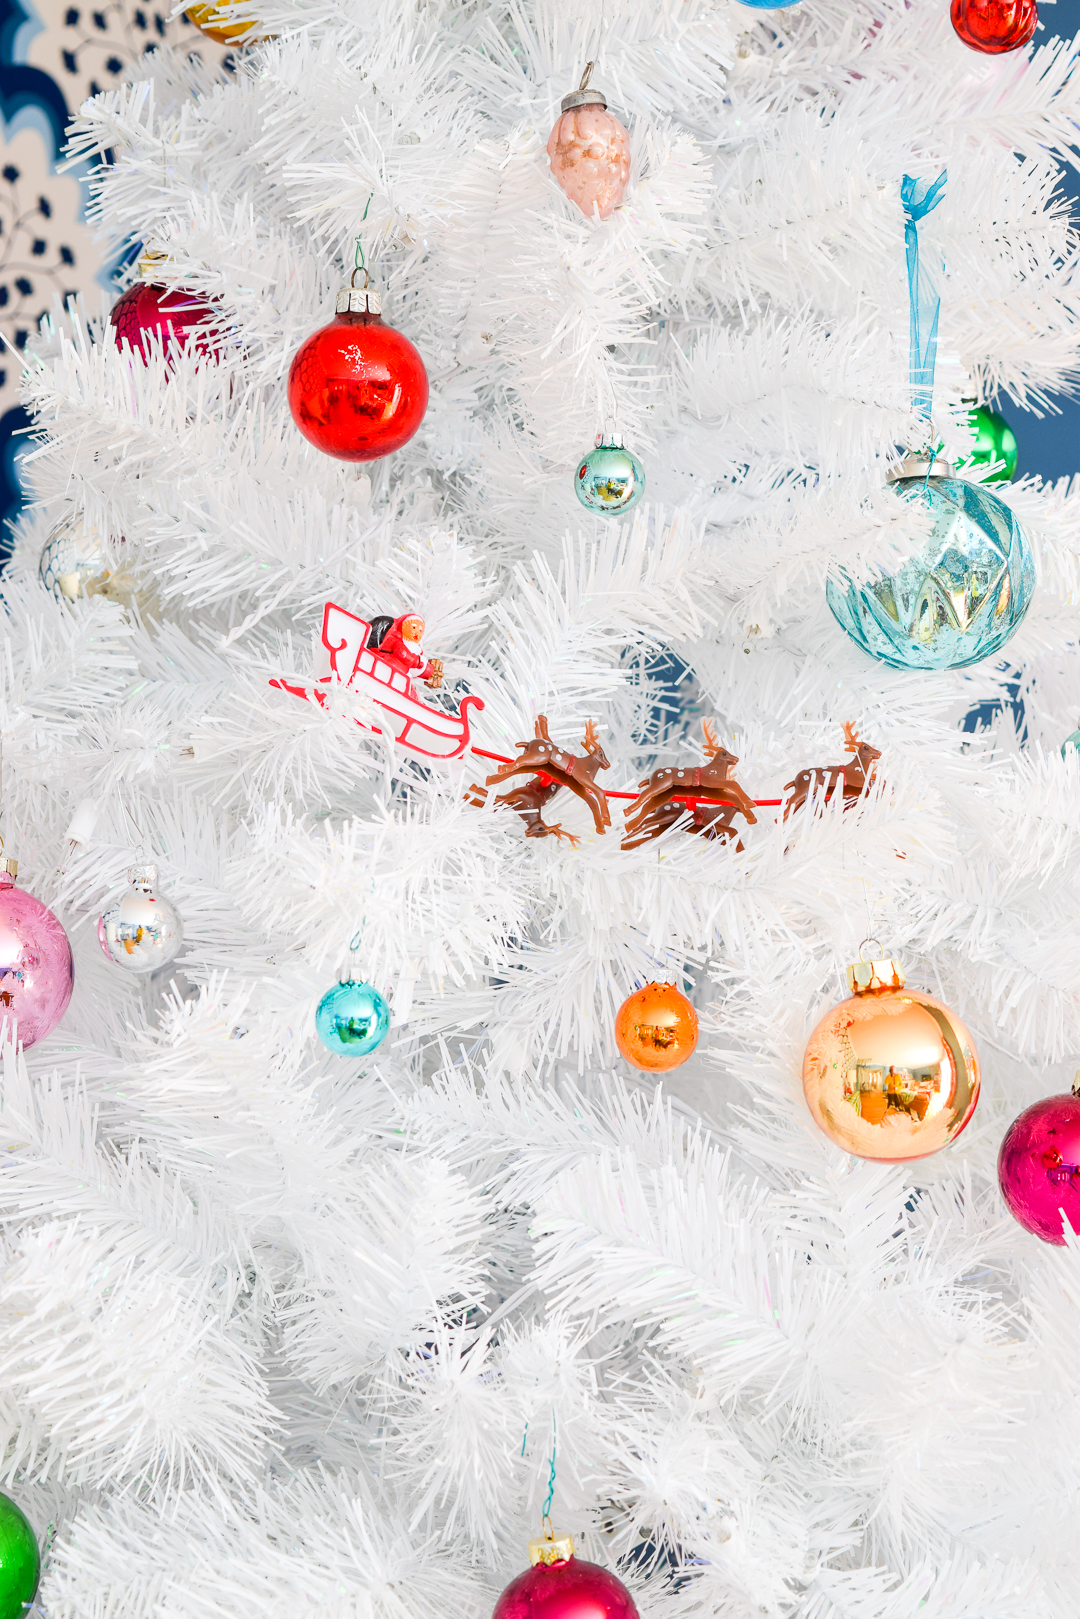 I've got the tree up, the ornaments out, and am showing an odd amount of restraint this year when it comes to accessorizing. Come check out my Retro & Colourful Christmas Living Room! #christmastour #christmasdecor #colourfulchristmas